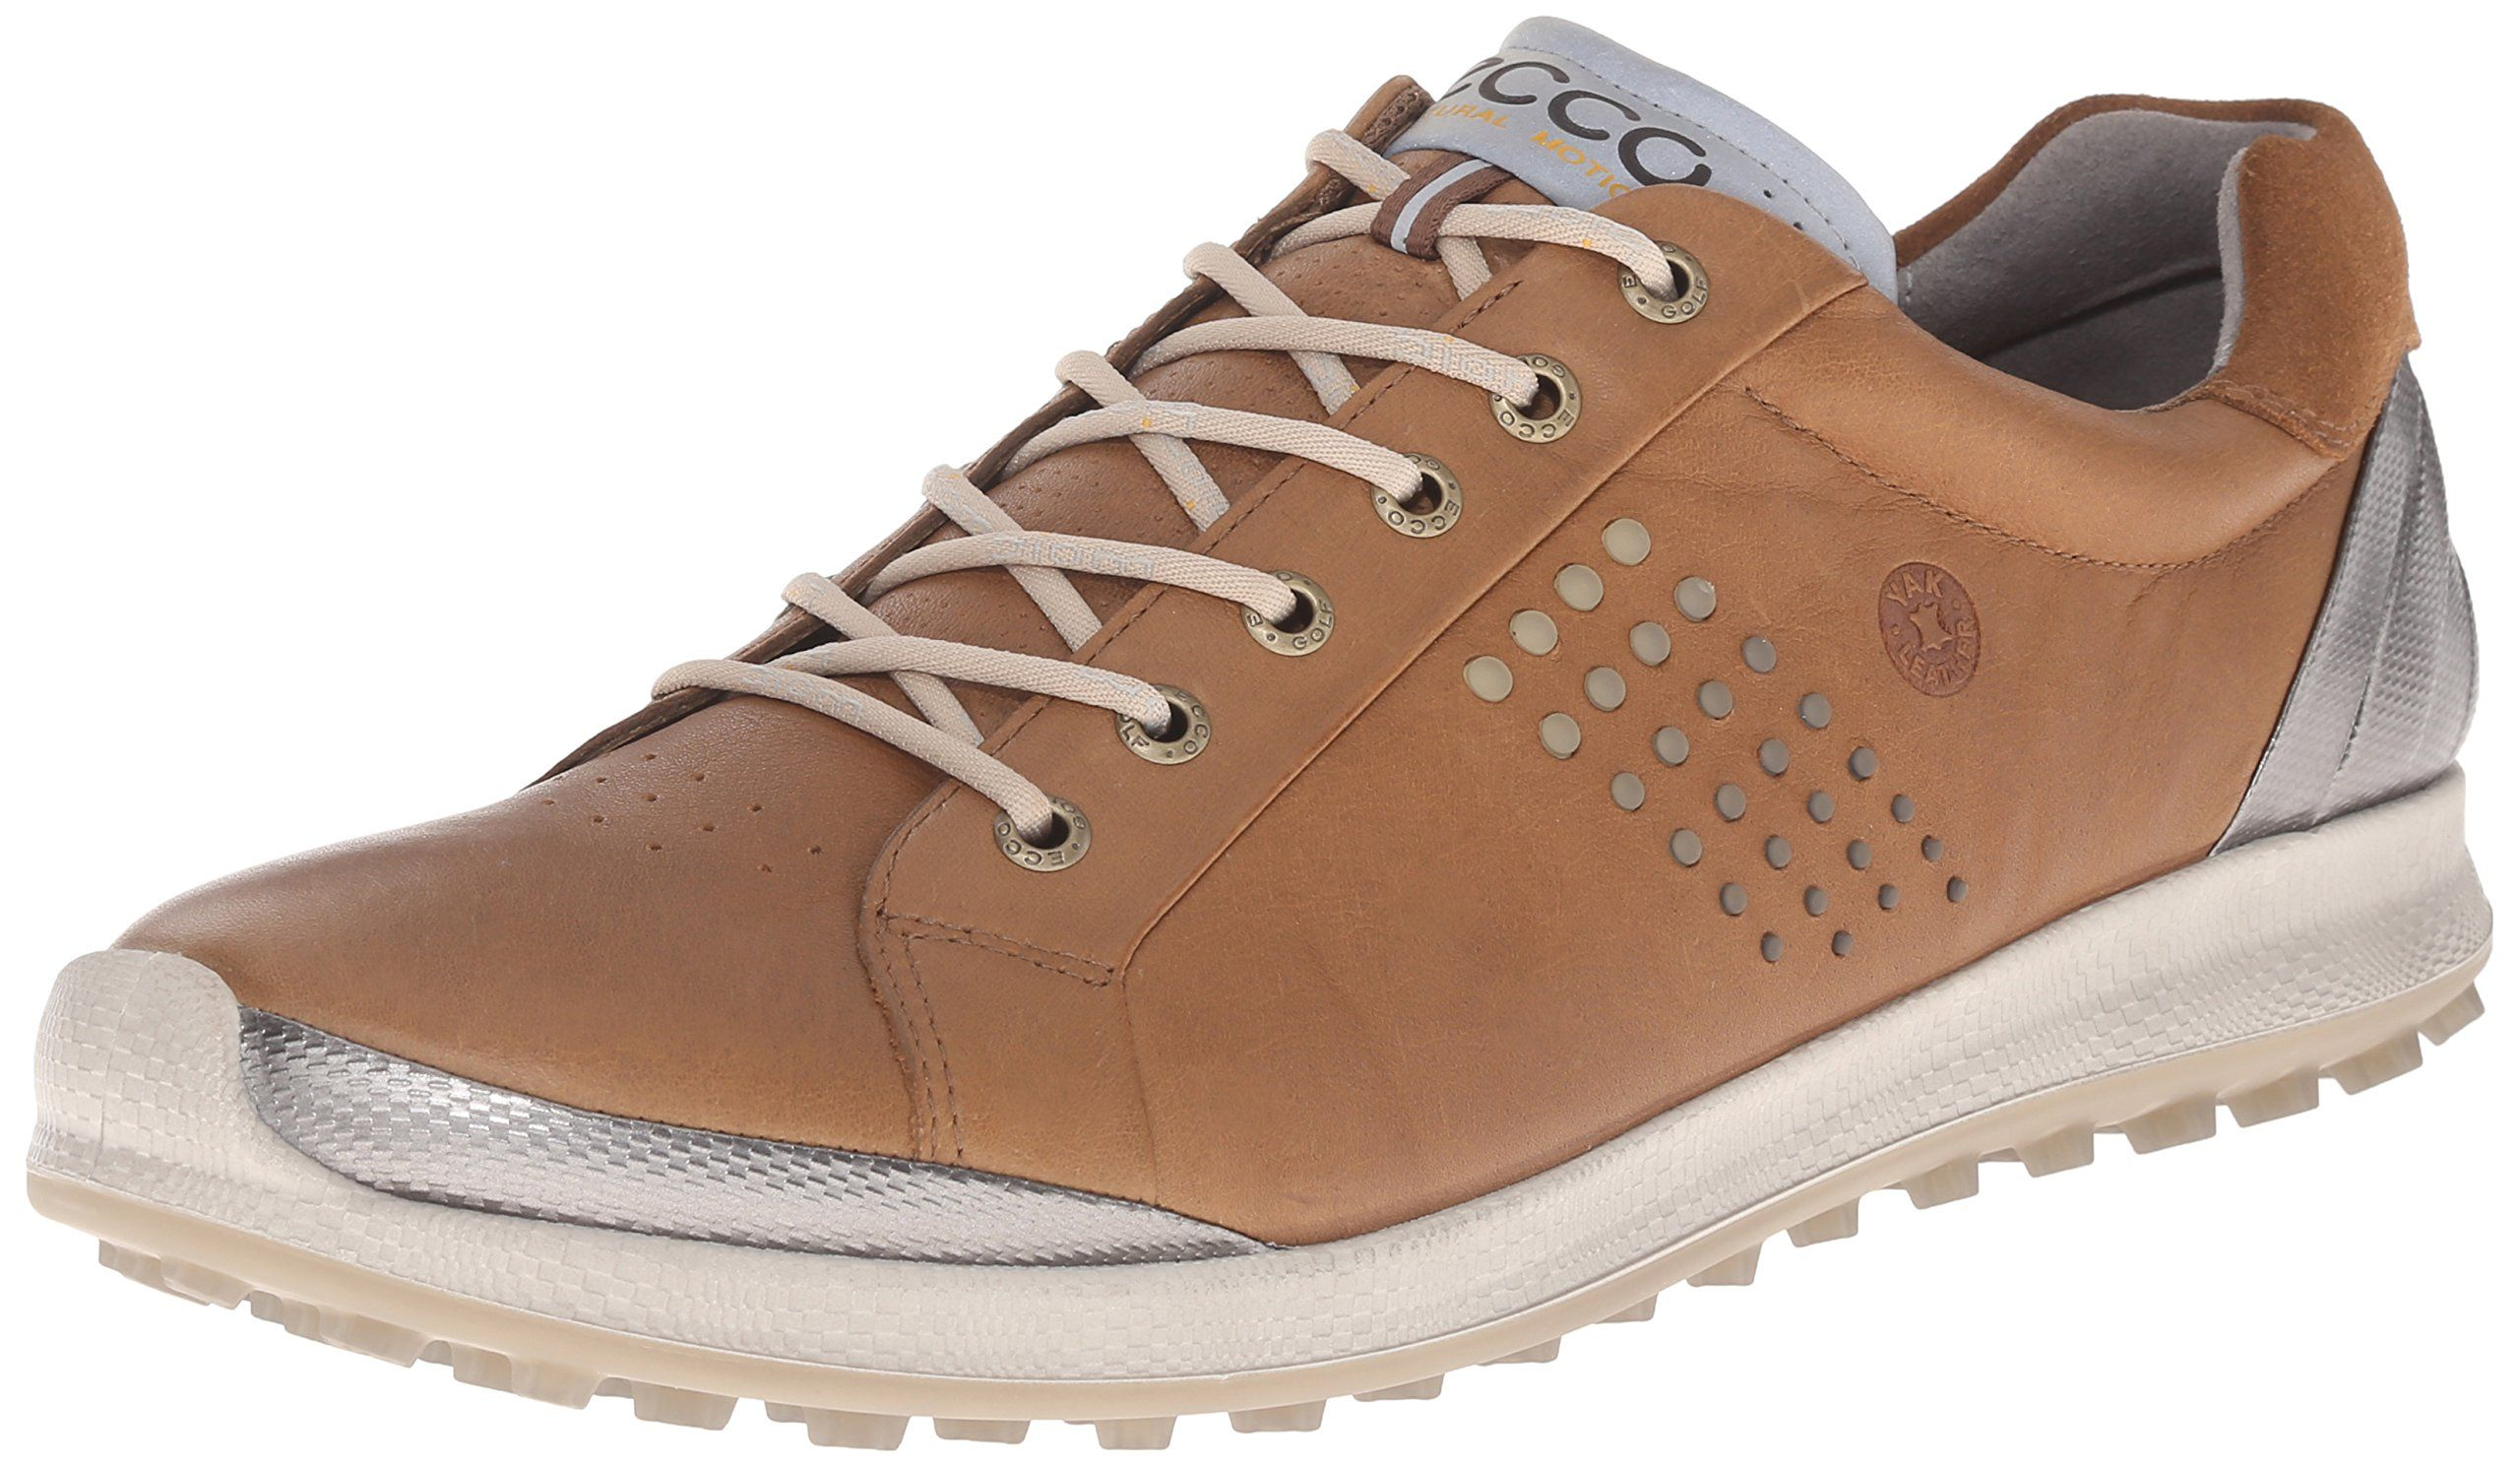 1c00f775508f ECCO Men s Biom Hybrid 2 Golf Shoe